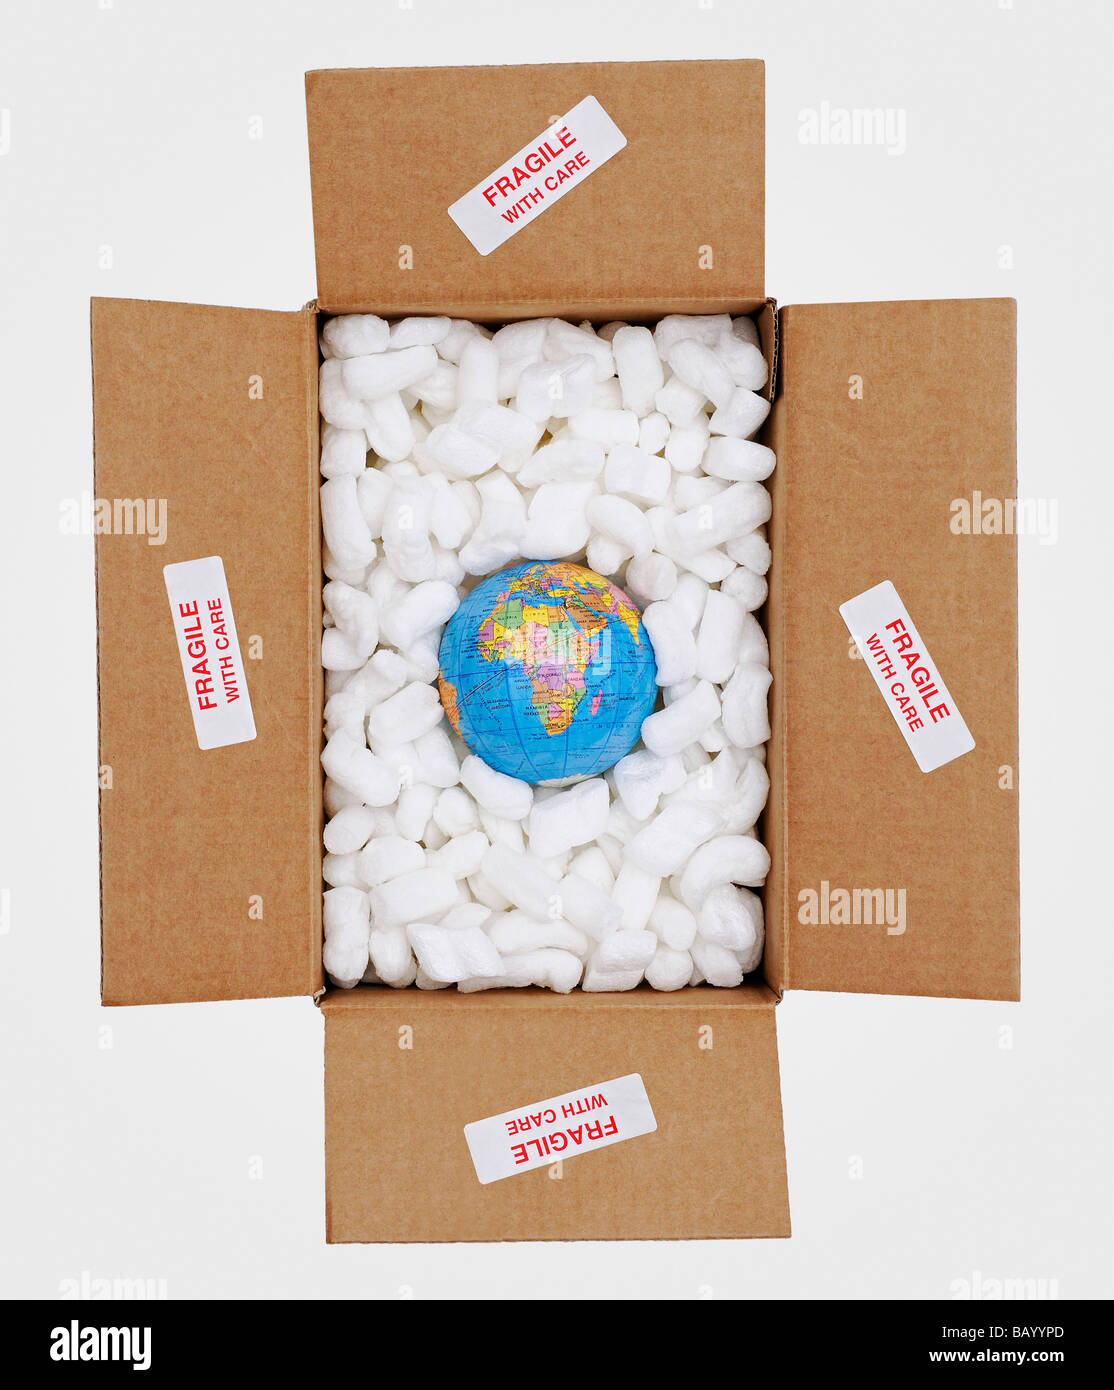 Globe in Open Cardboard Box Surrounded by Protective Packing and Marked as Fragile - Stock Image